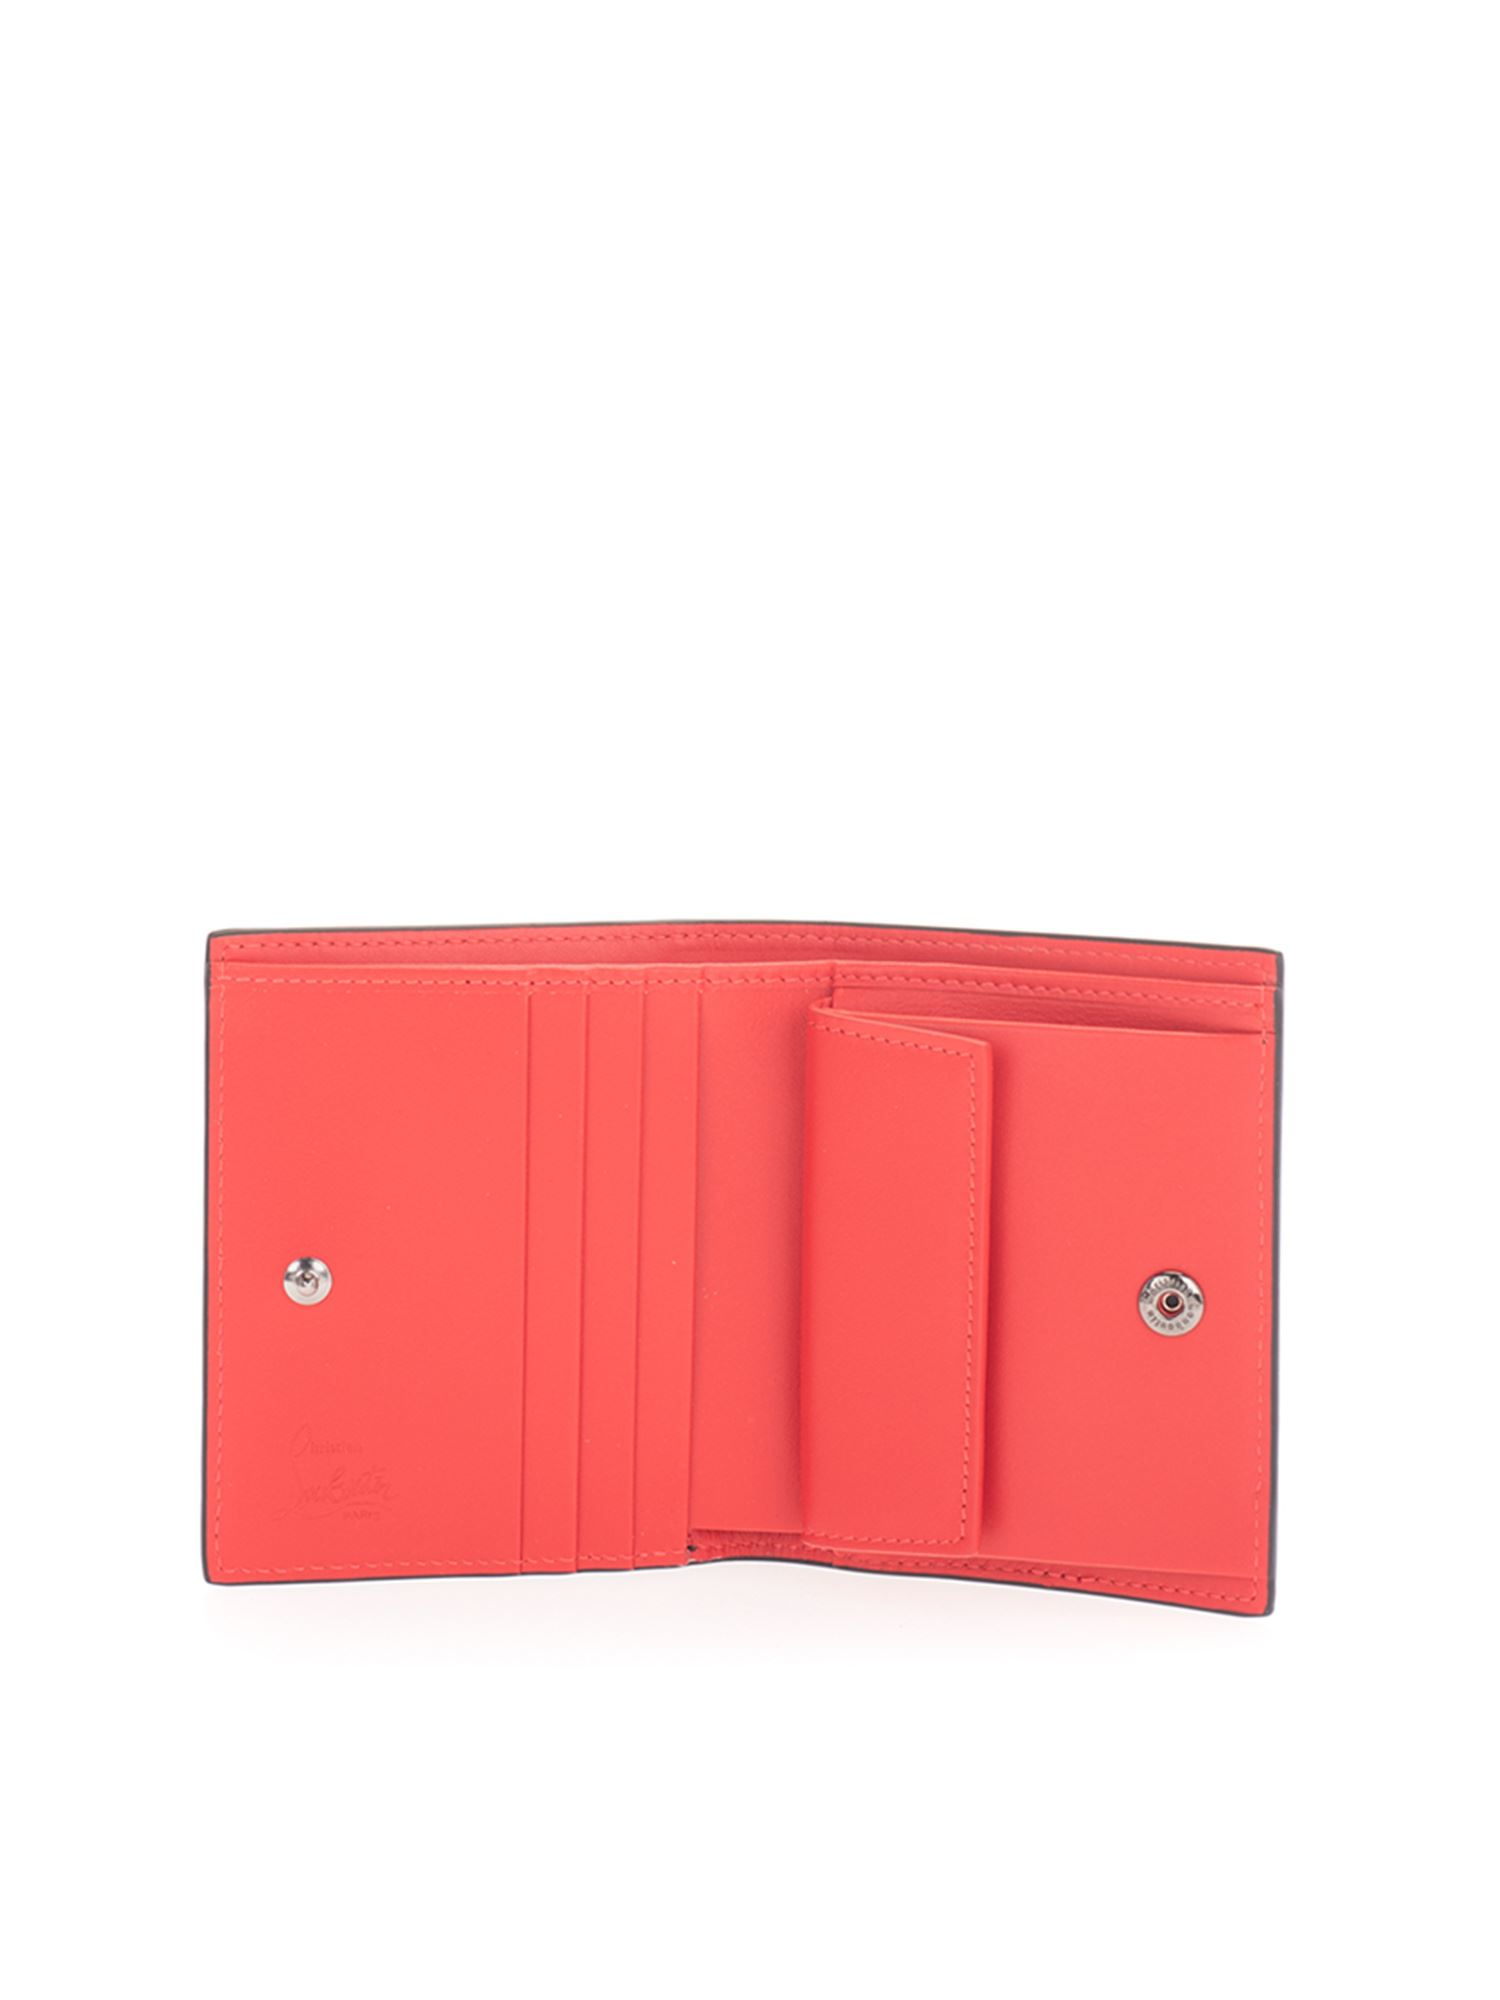 Christian Louboutin BRANDED FODING WALLET IN BLACK AND RED